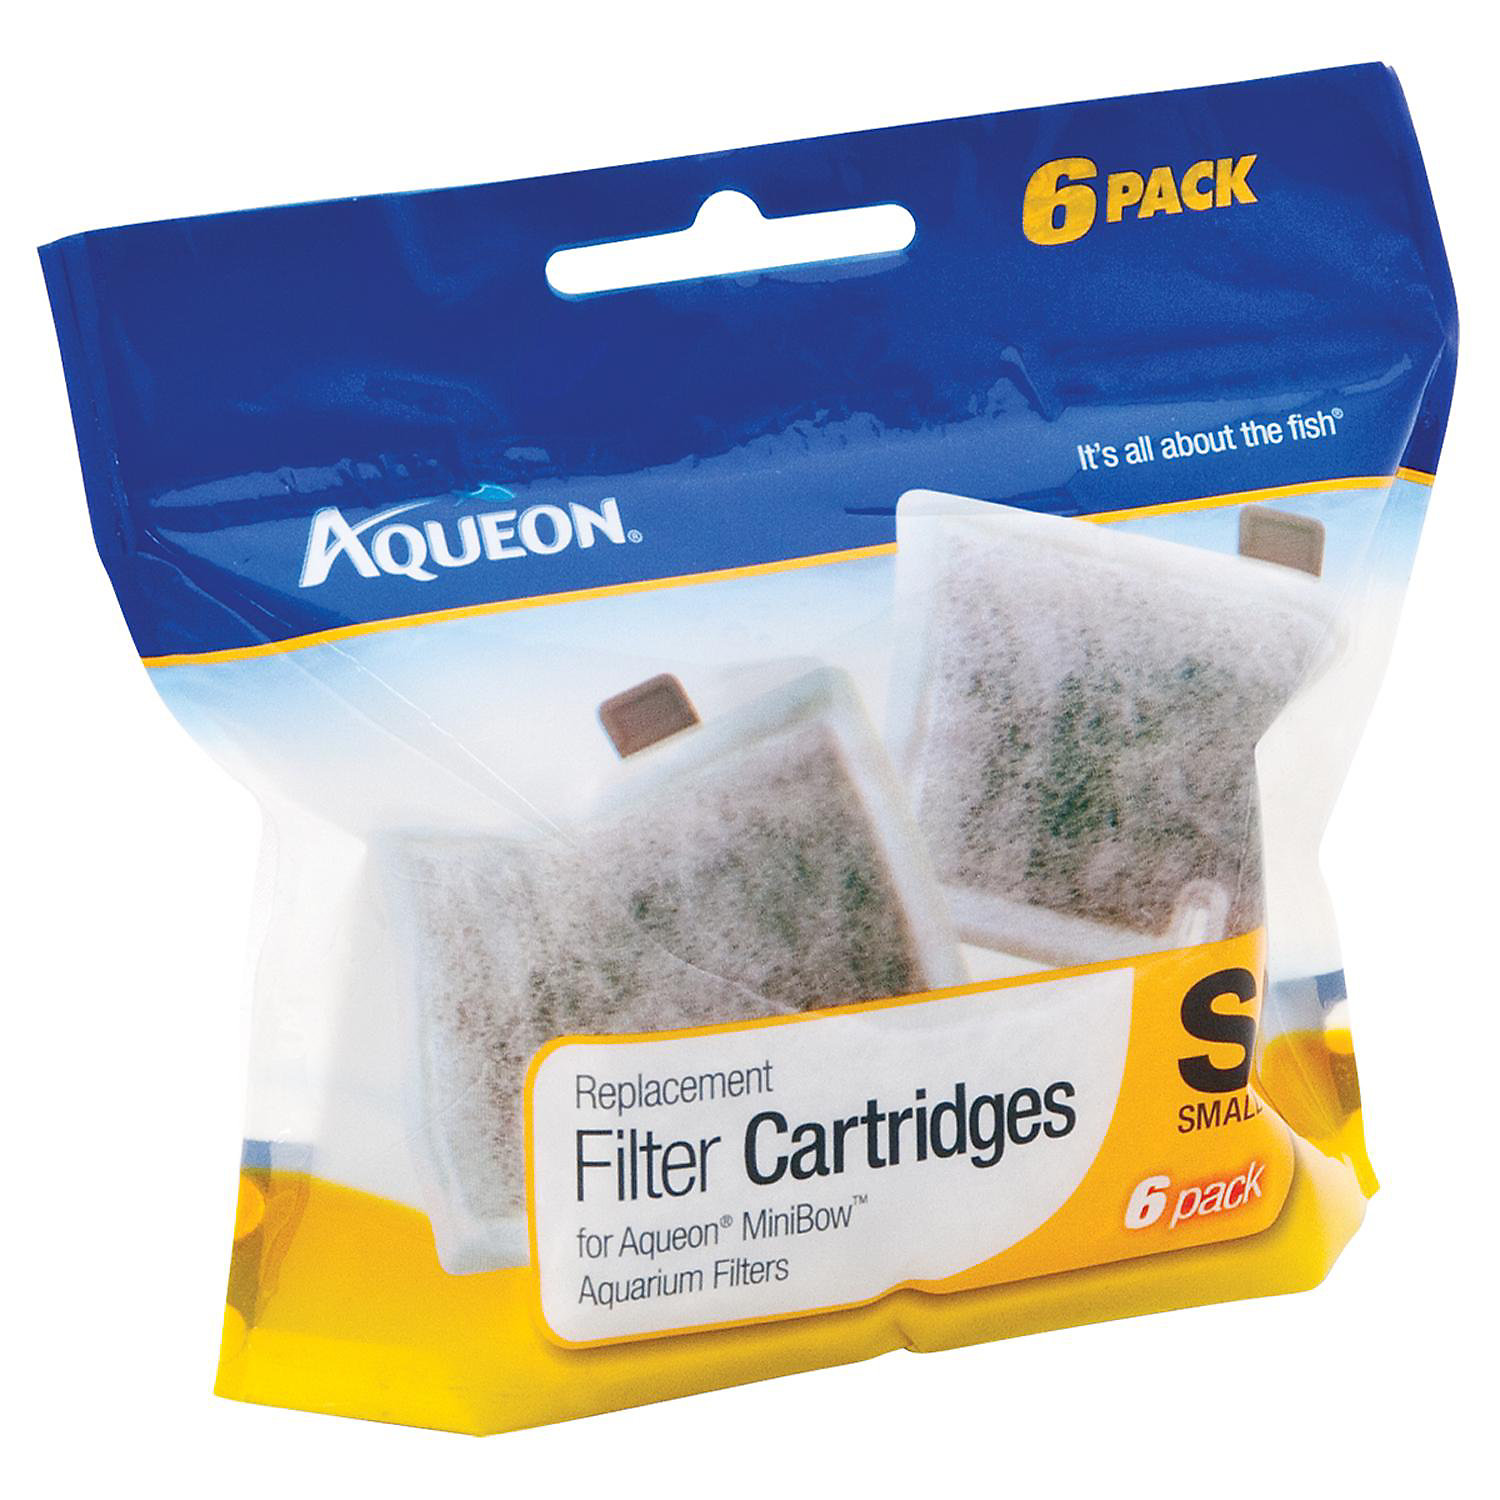 Aqueon Minibow Replacement Filter Cartridges Small Pack Of 6